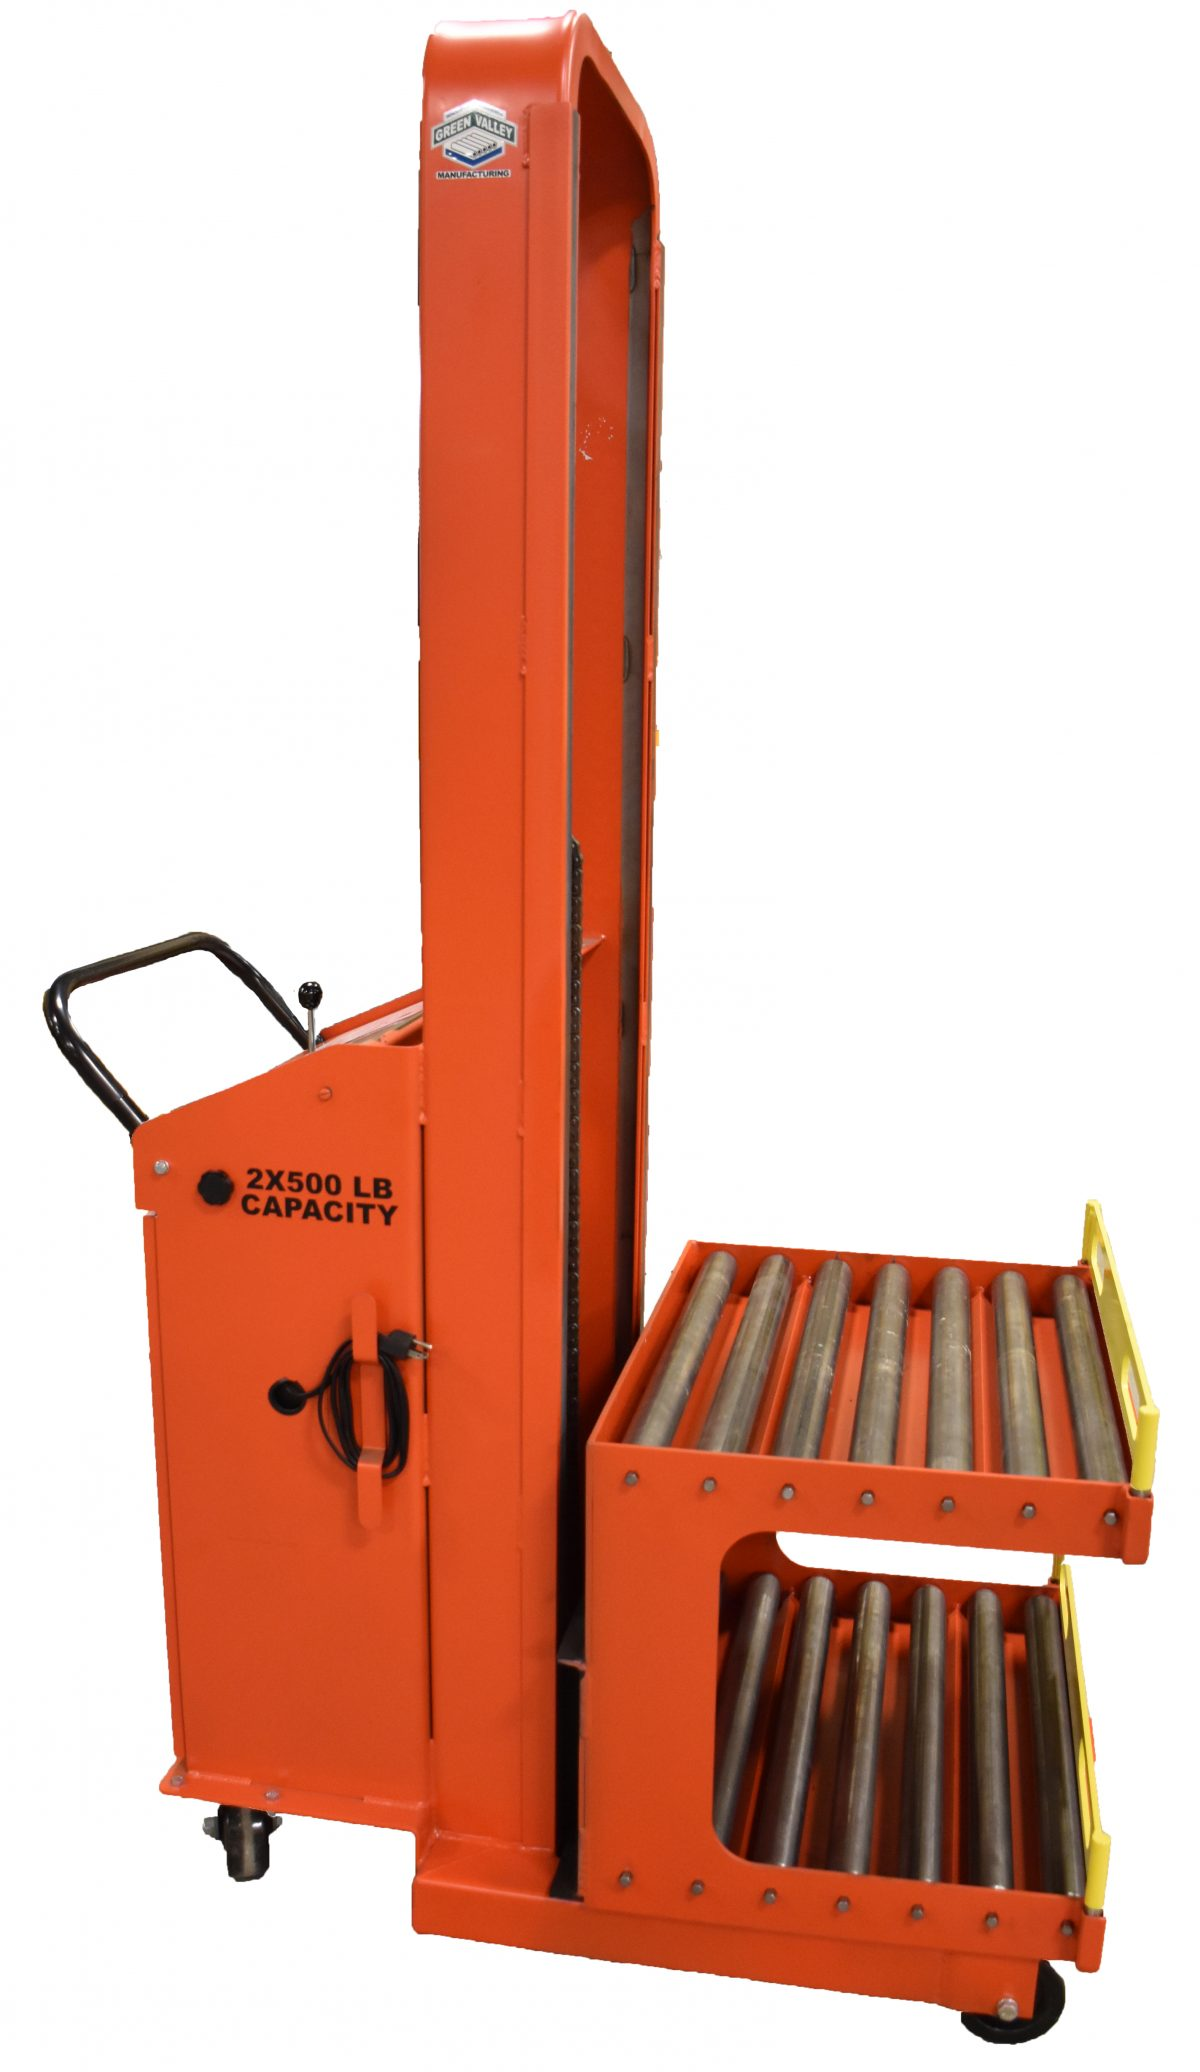 2 X 300 lb Double Station Mold Change Cart